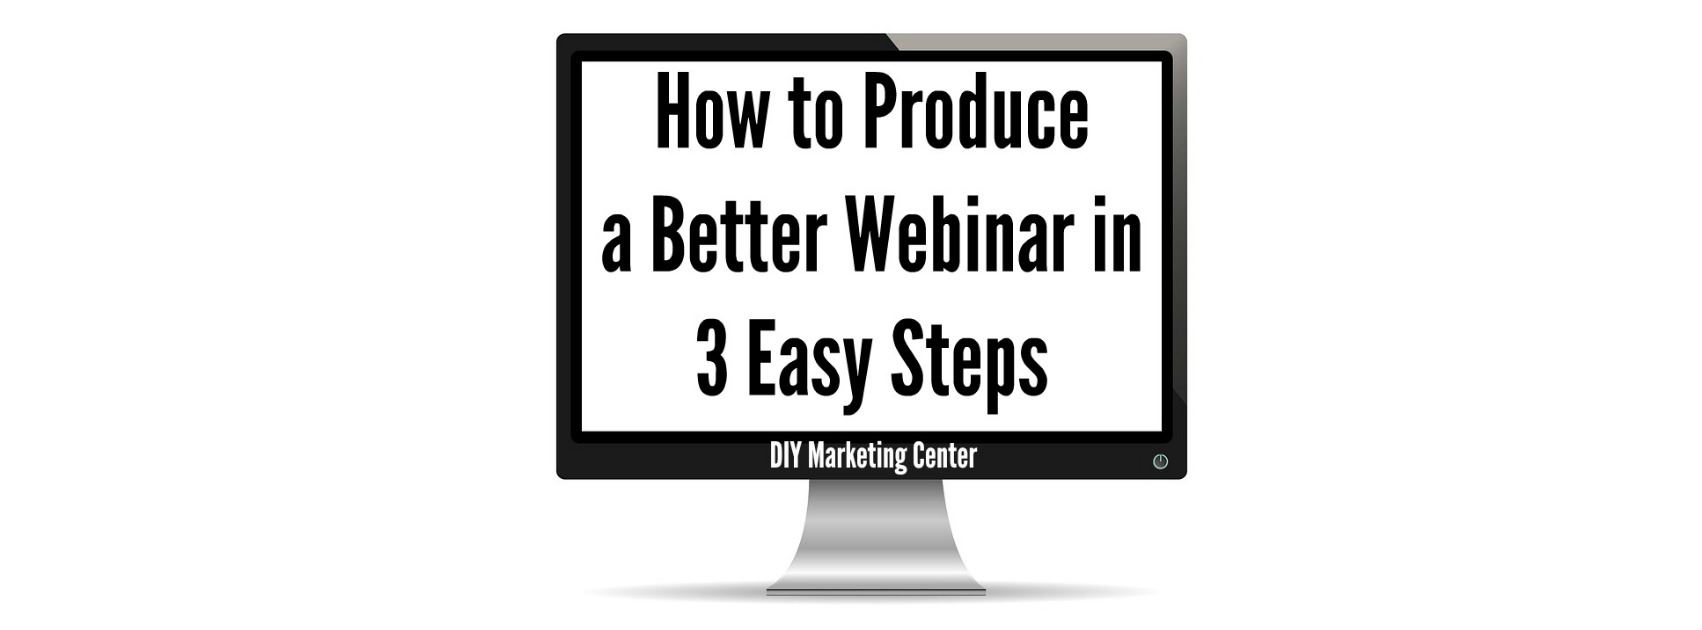 Marketing Webinar How to Produce a Better Webinar in 3 Easy Steps